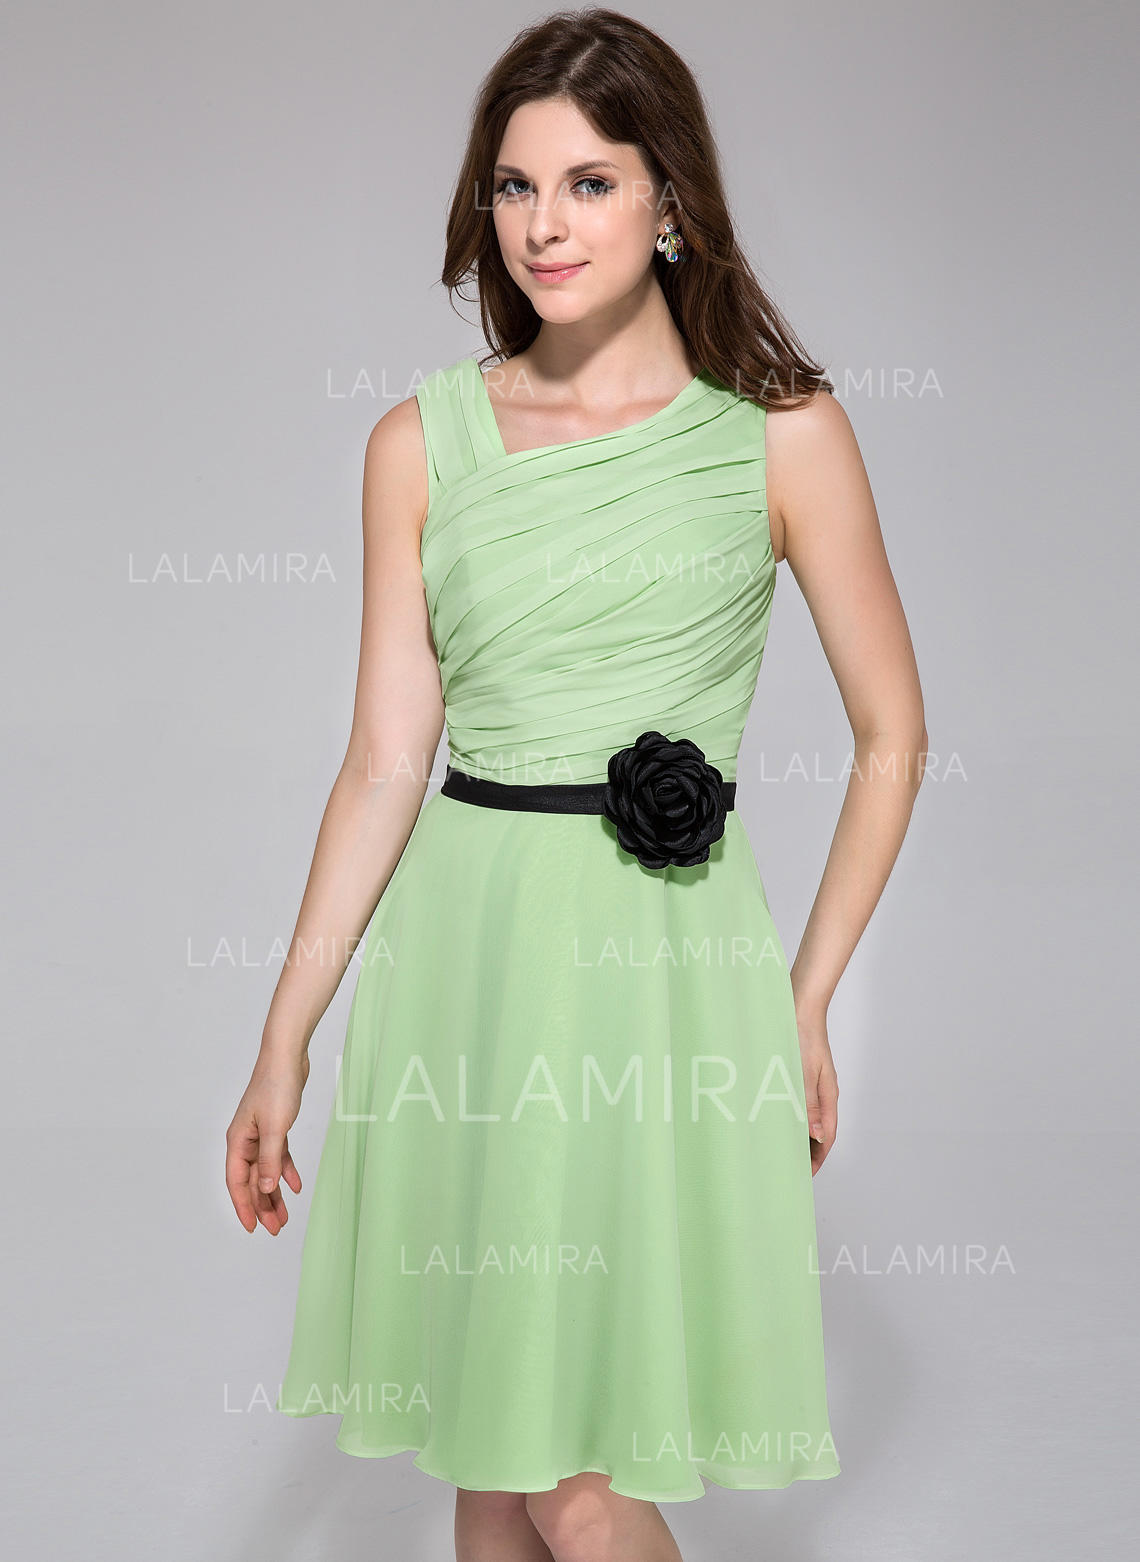 68f876d9283e A-Line/Princess Chiffon Bridesmaid Dresses Ruffle Sash Flower(s) Sleeveless  Knee. Loading zoom